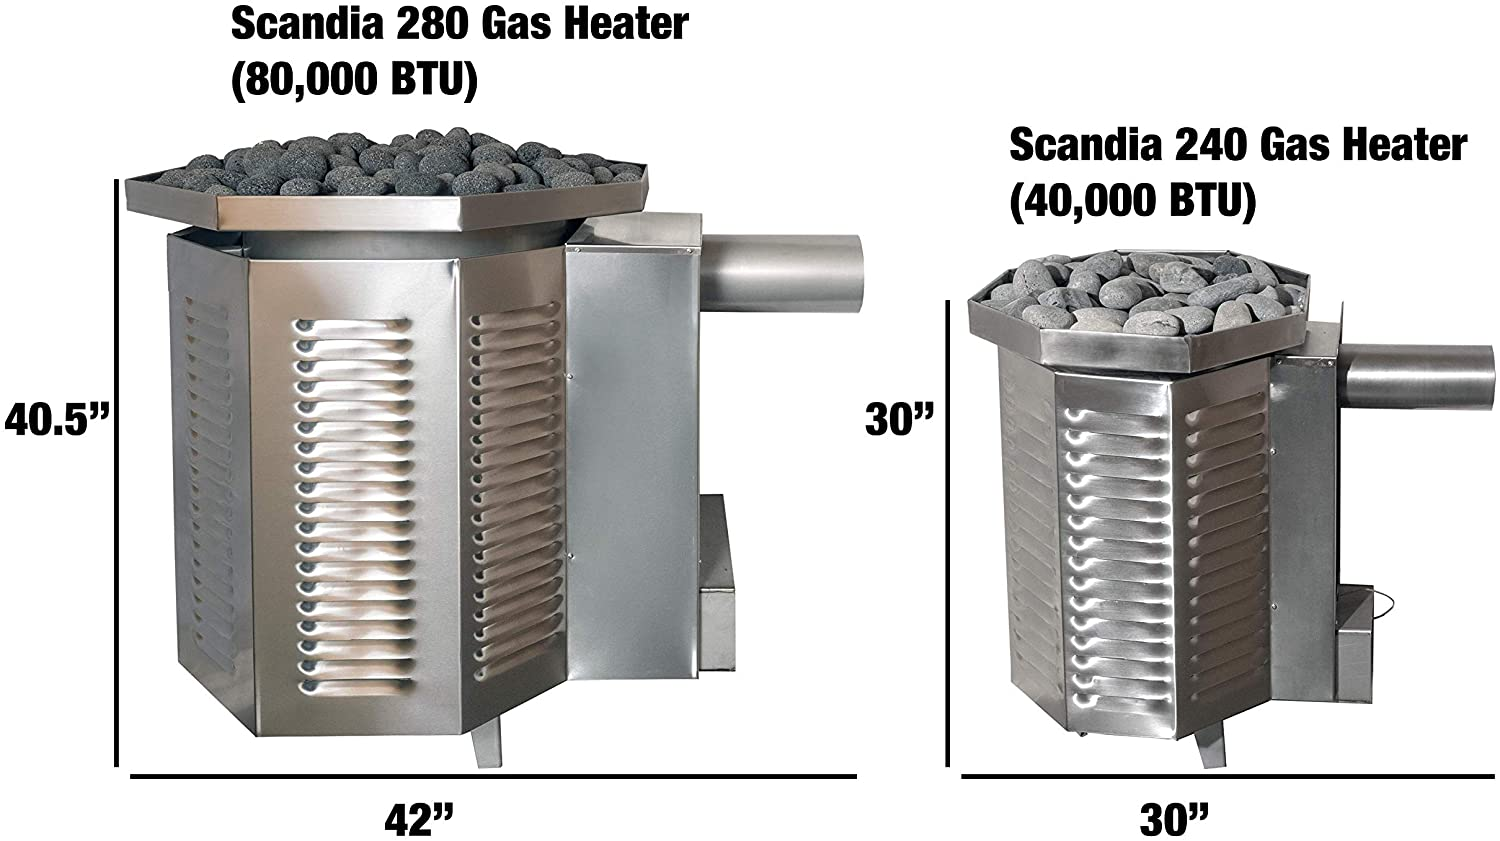 Scandia 280 and 240 Heaters With Specs